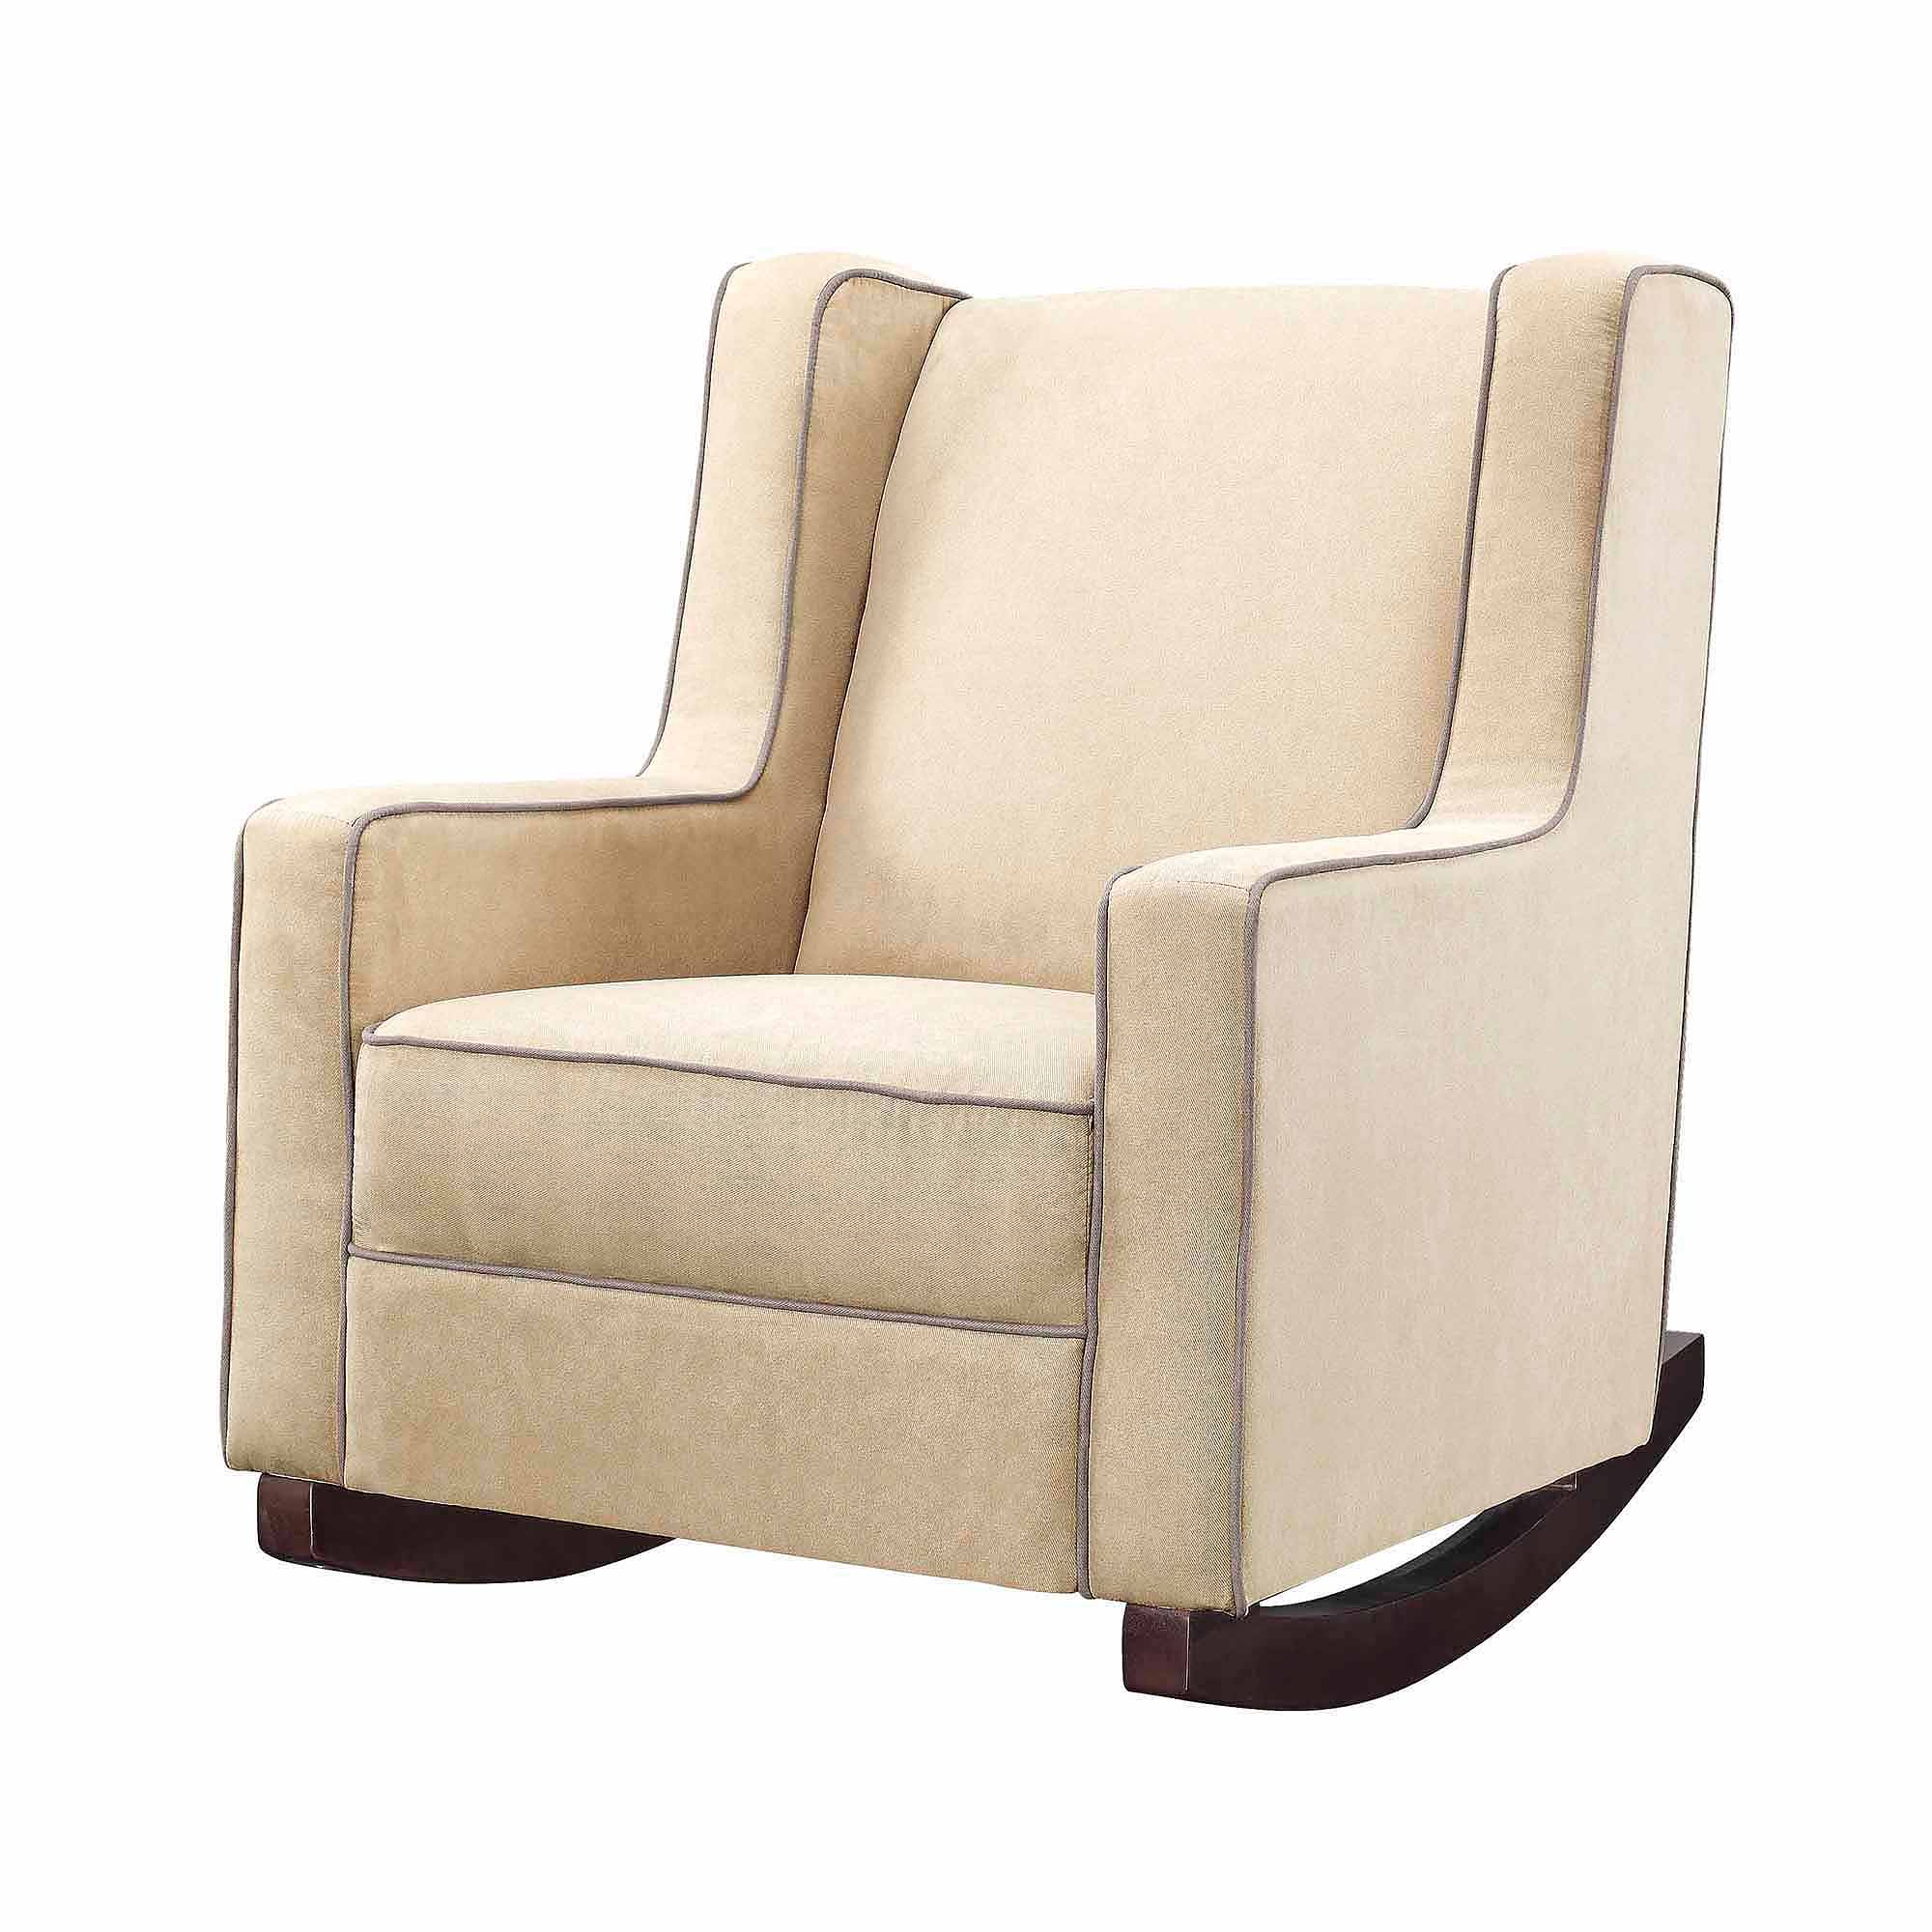 Best And Newest Abbey Swivel Glider Recliners Pertaining To Baby Relax Abby Rocker – Walmart (View 13 of 20)